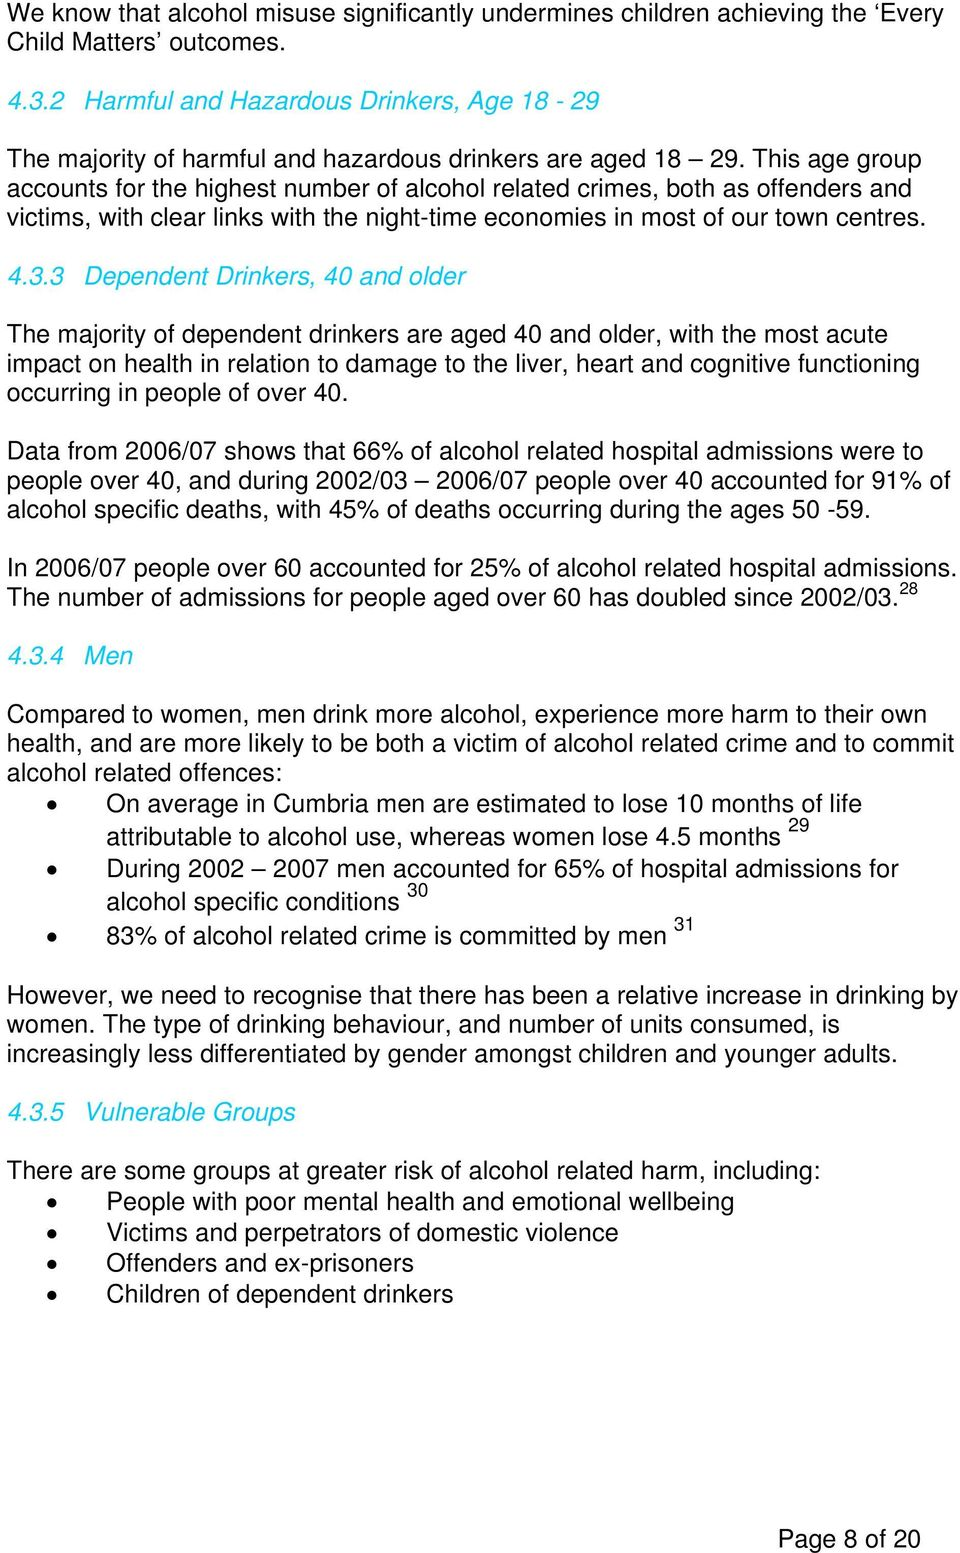 This age group accounts for the highest number of alcohol related crimes, both as offenders and victims, with clear links with the night-time economies in most of our town centres. 4.3.